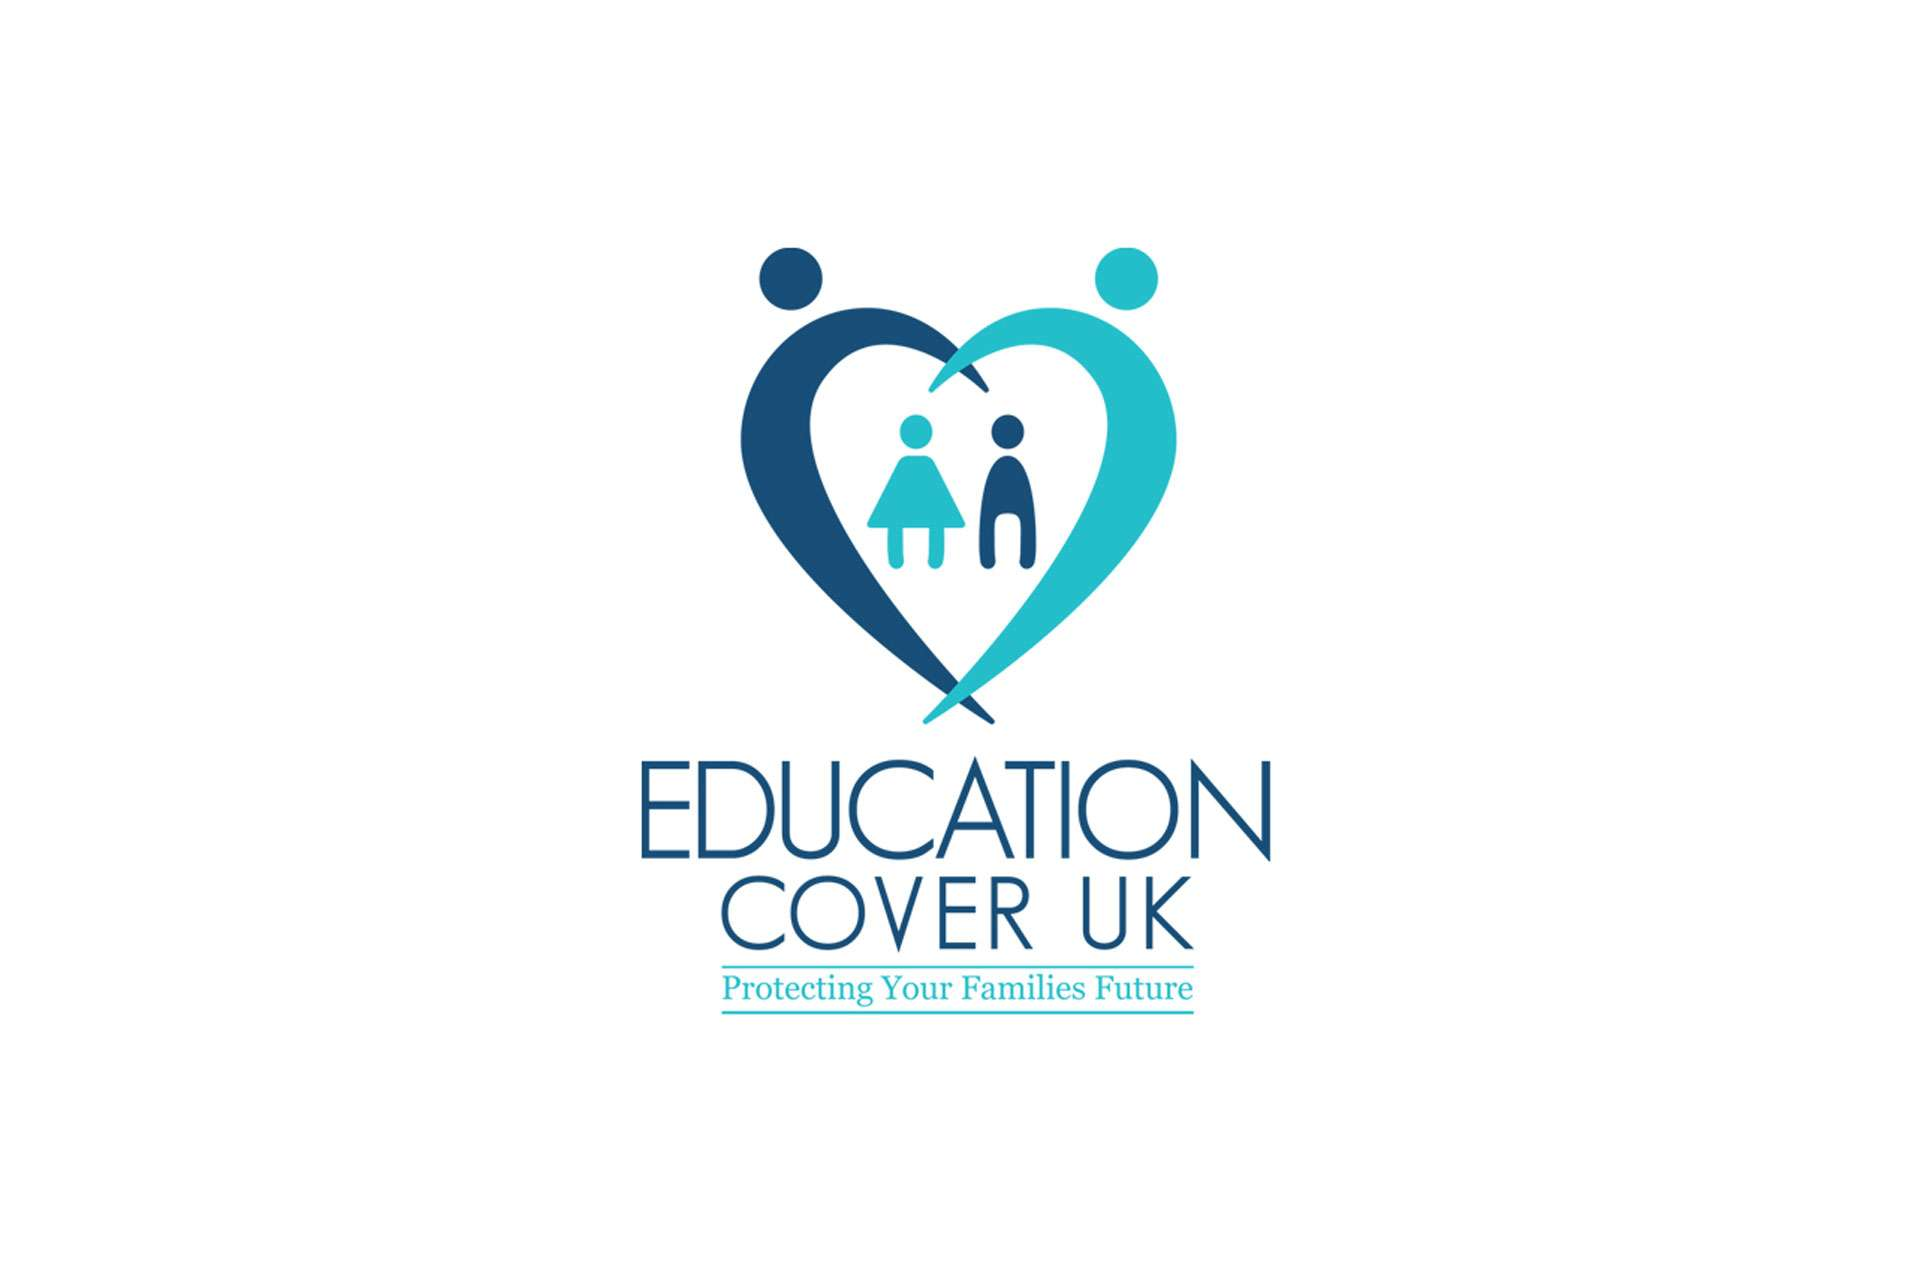 Logo design for educational insurance company based in Clevedon, North Somerset